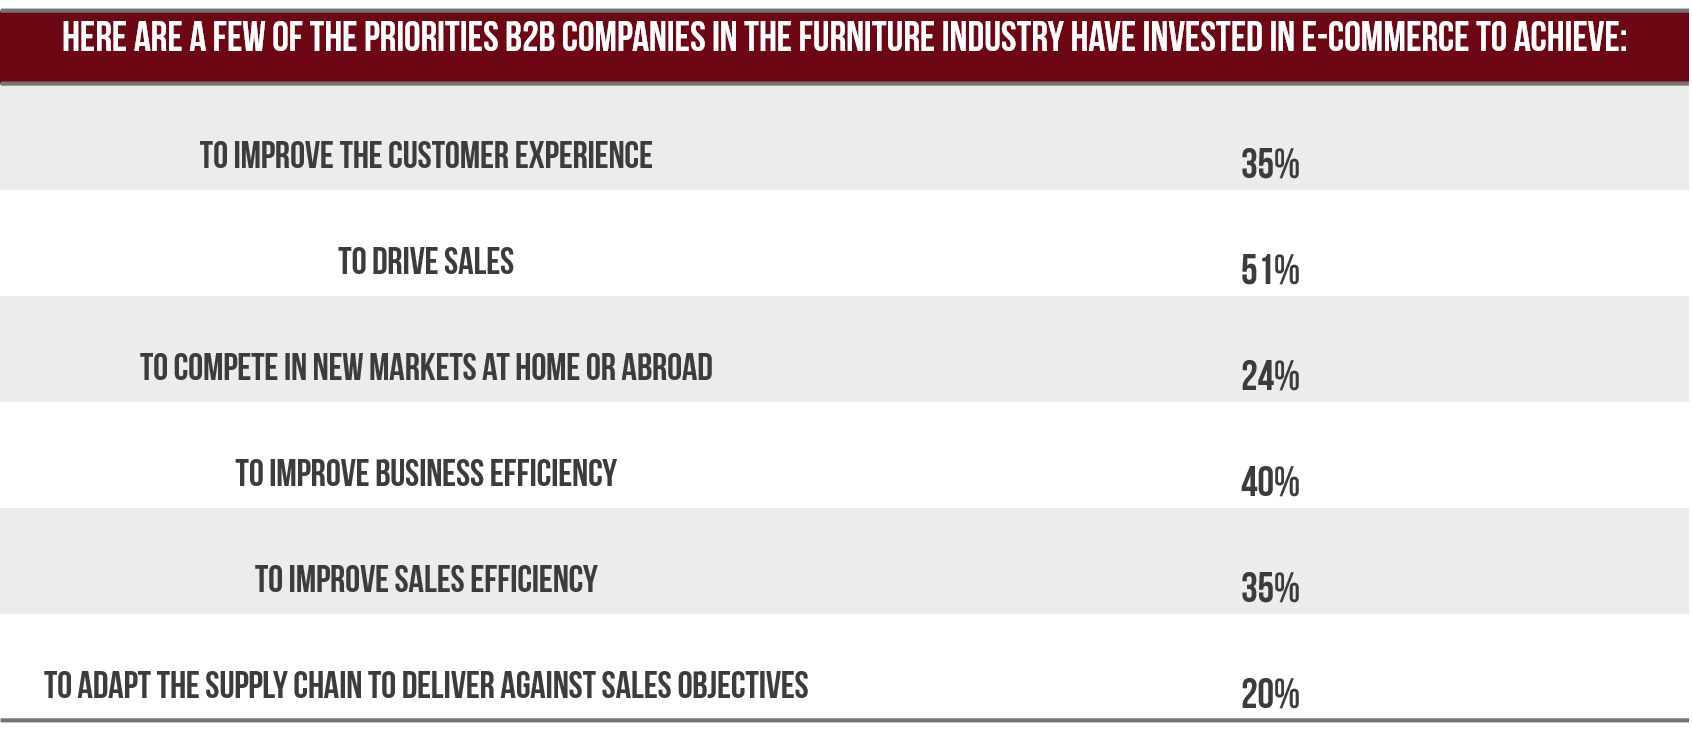 Business Use Of Home 2020.B2b E Commerce For Furniture Statistics For Your 2020